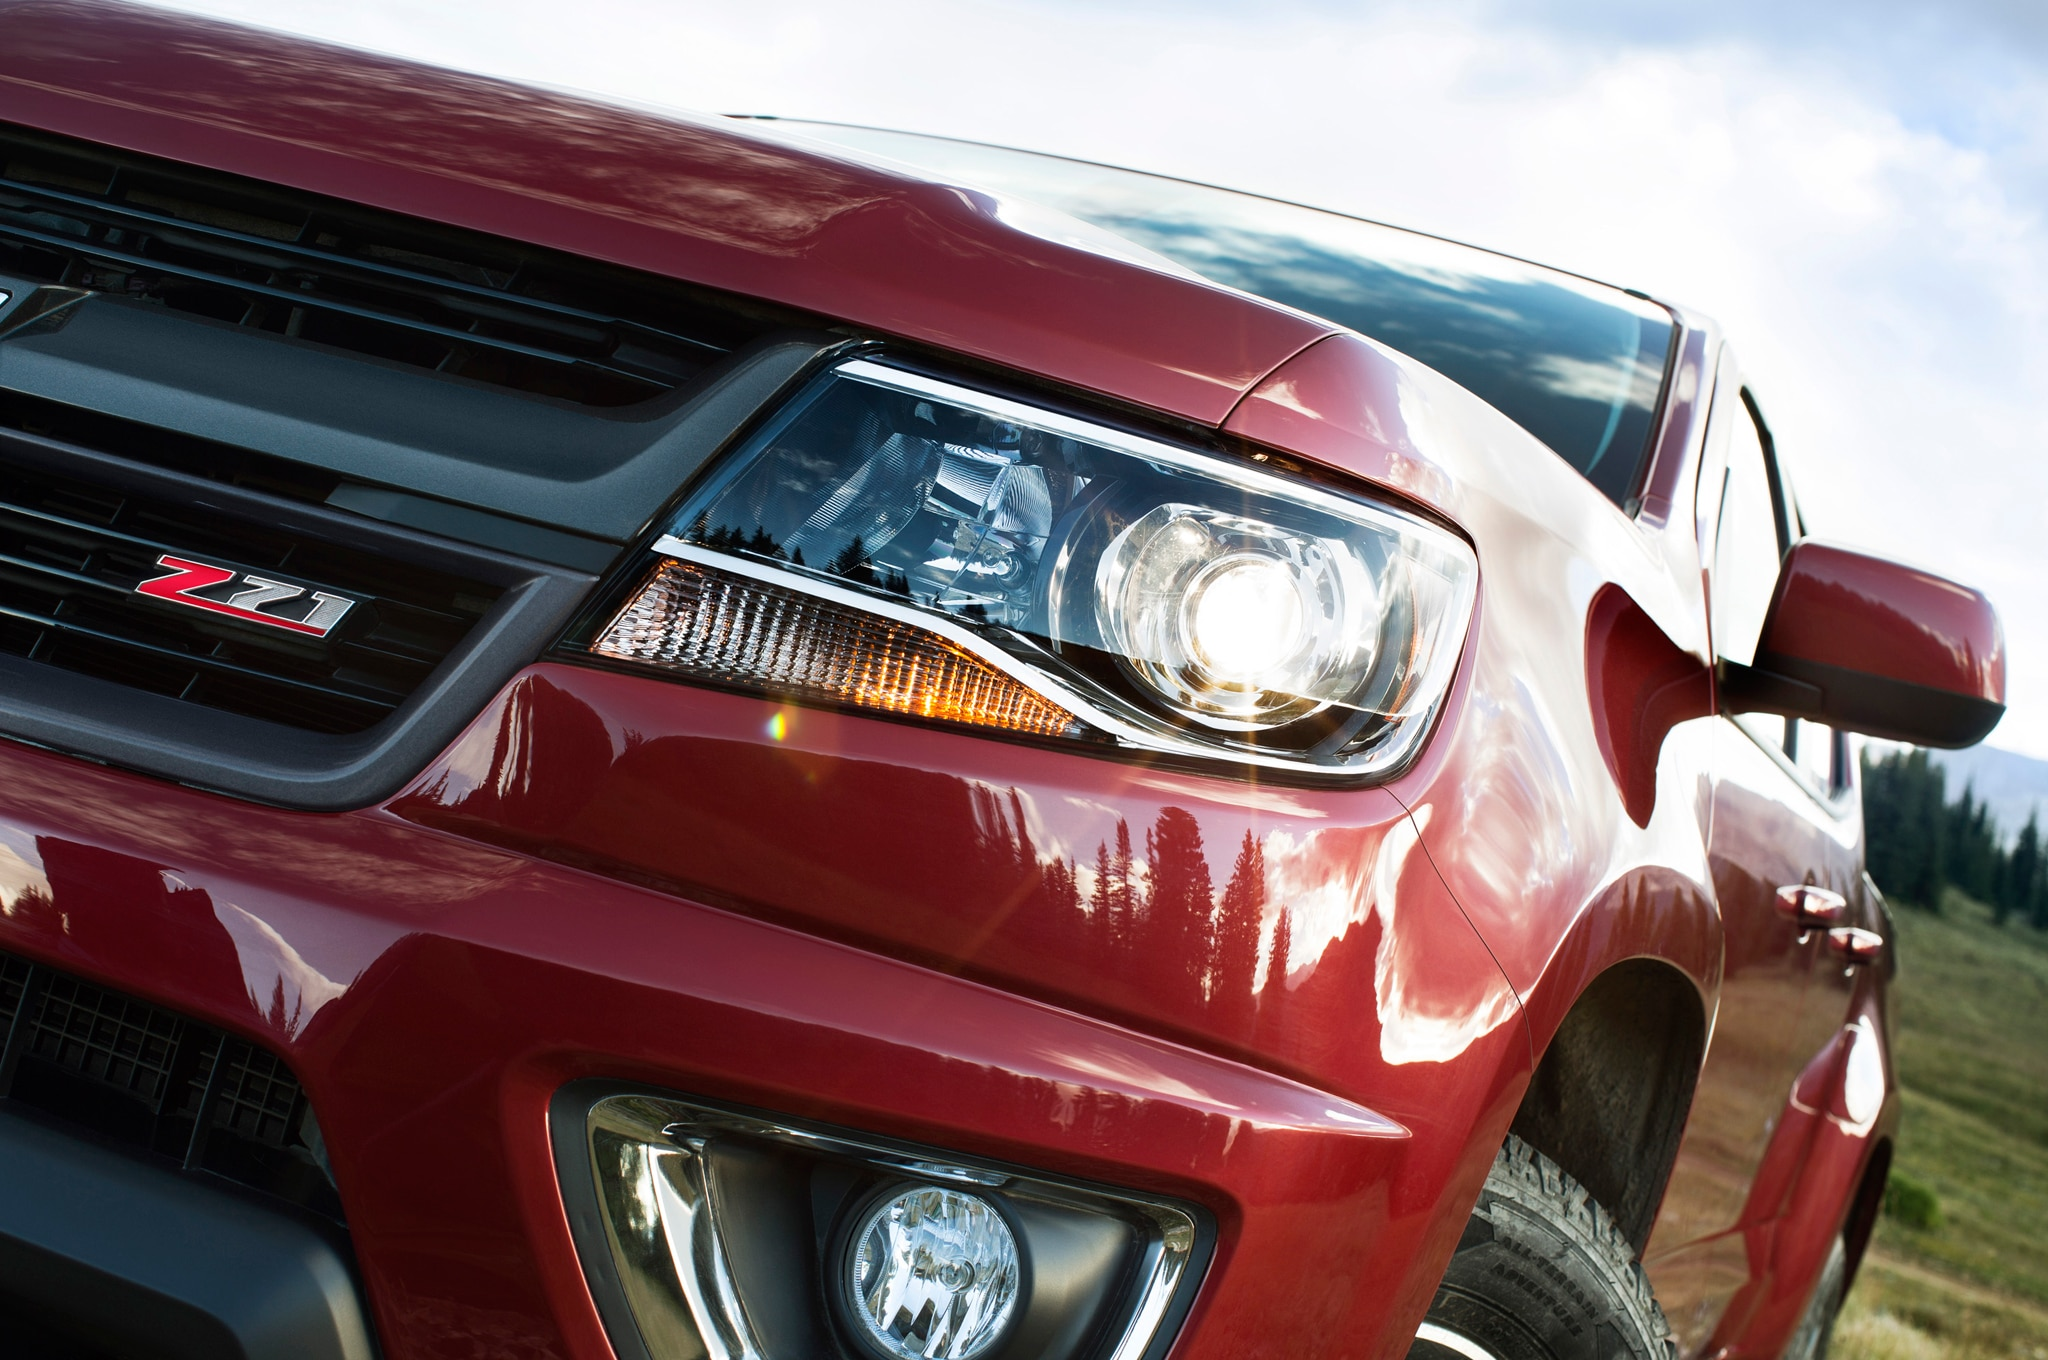 2015 Chevrolet Colorado front headlight